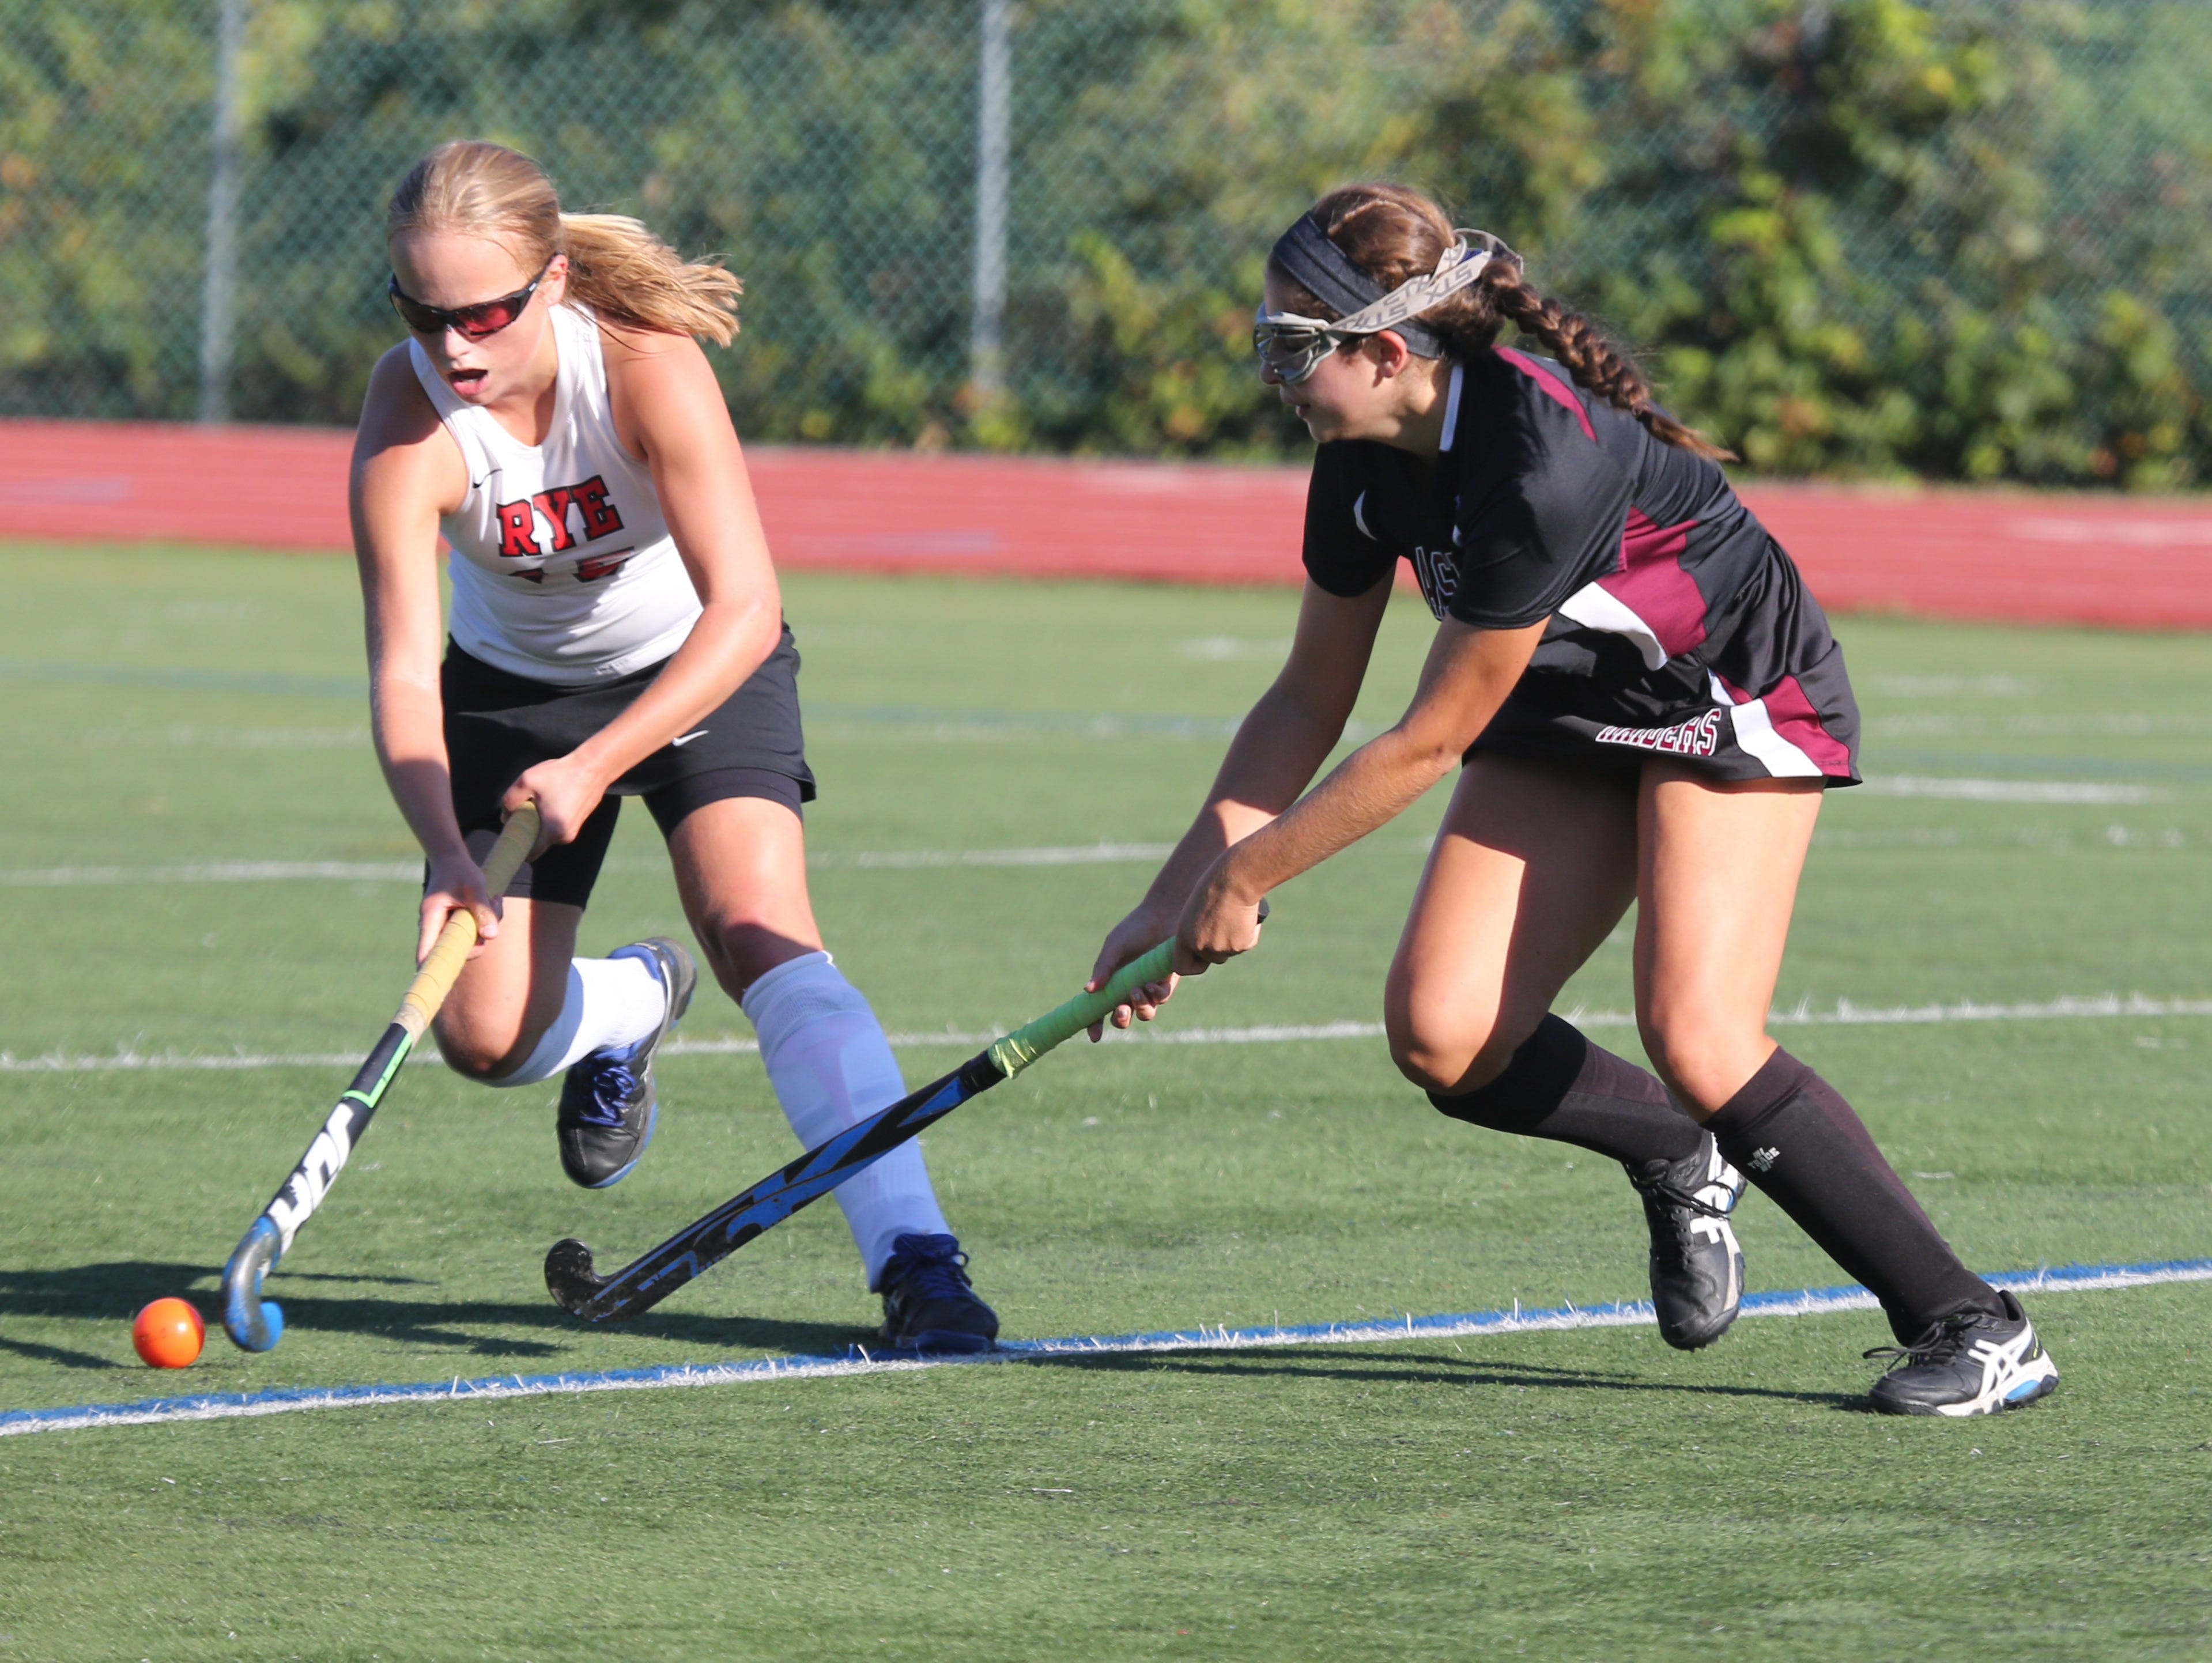 Rye's Fusine Govaert moves the ball in front of Scarsdale's Ali Bauersfeld during their field hockey game in Rye, Sept. 24, 2015. Rye beat Scarsdale, 3-1.